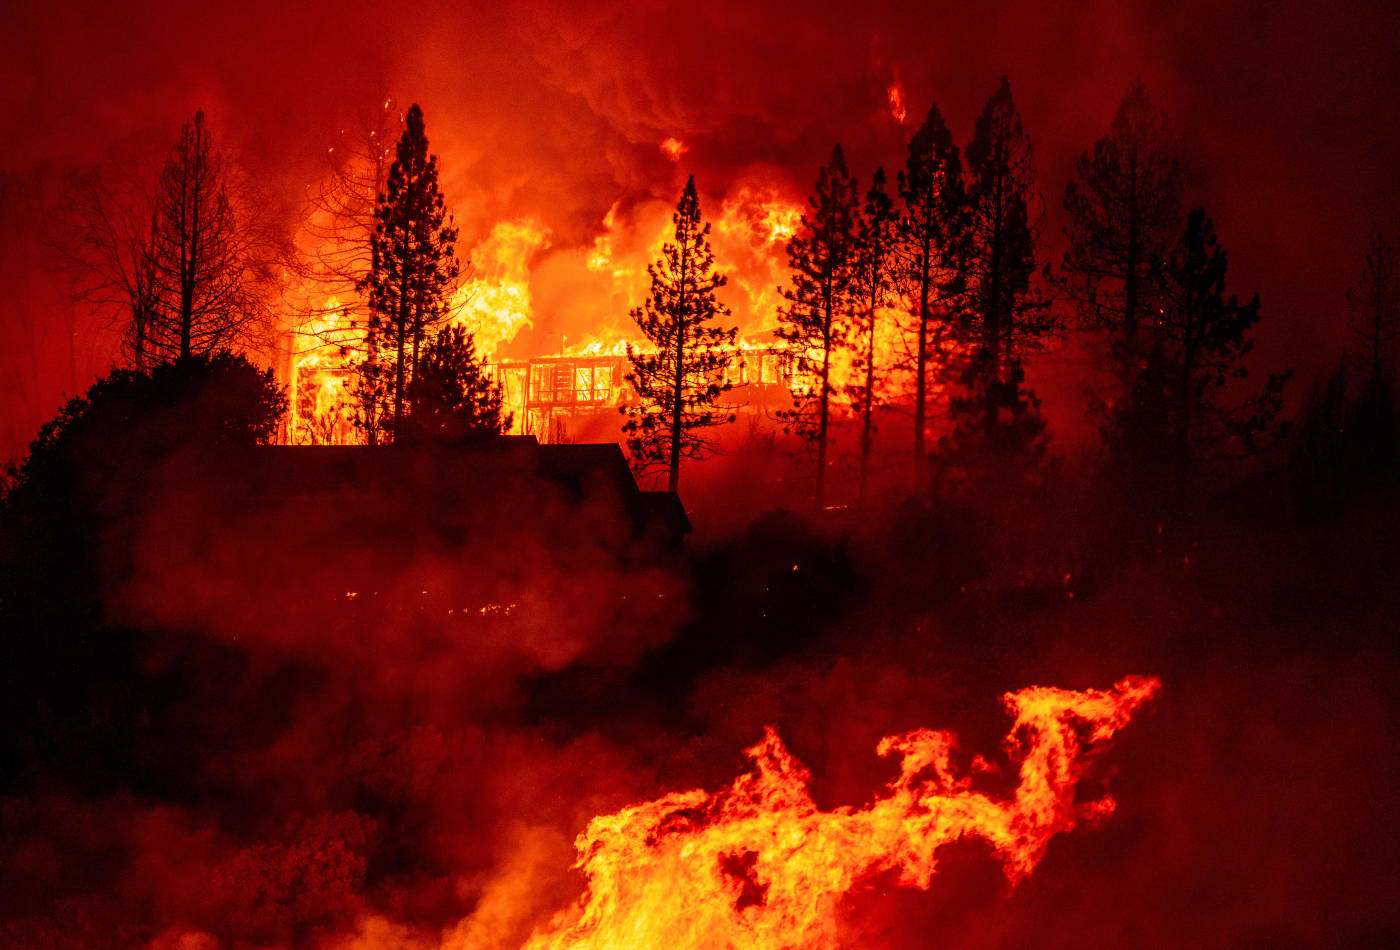 Firefighters overtaken by flames in California mountains